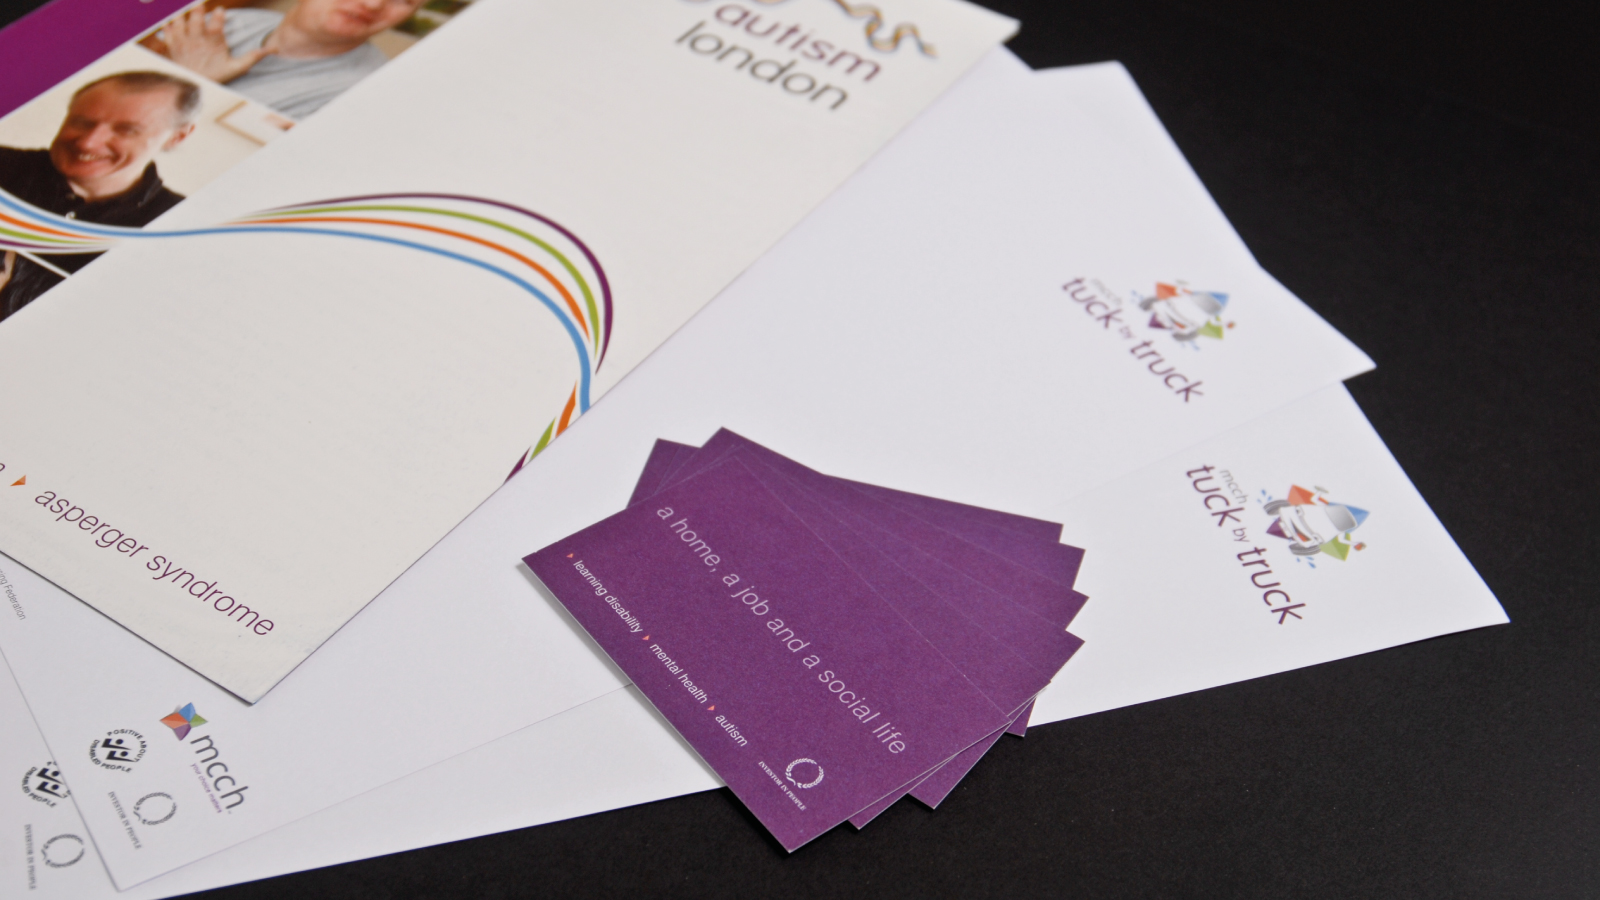 Stationery designs and corporate brochure designs for Charity MCCH